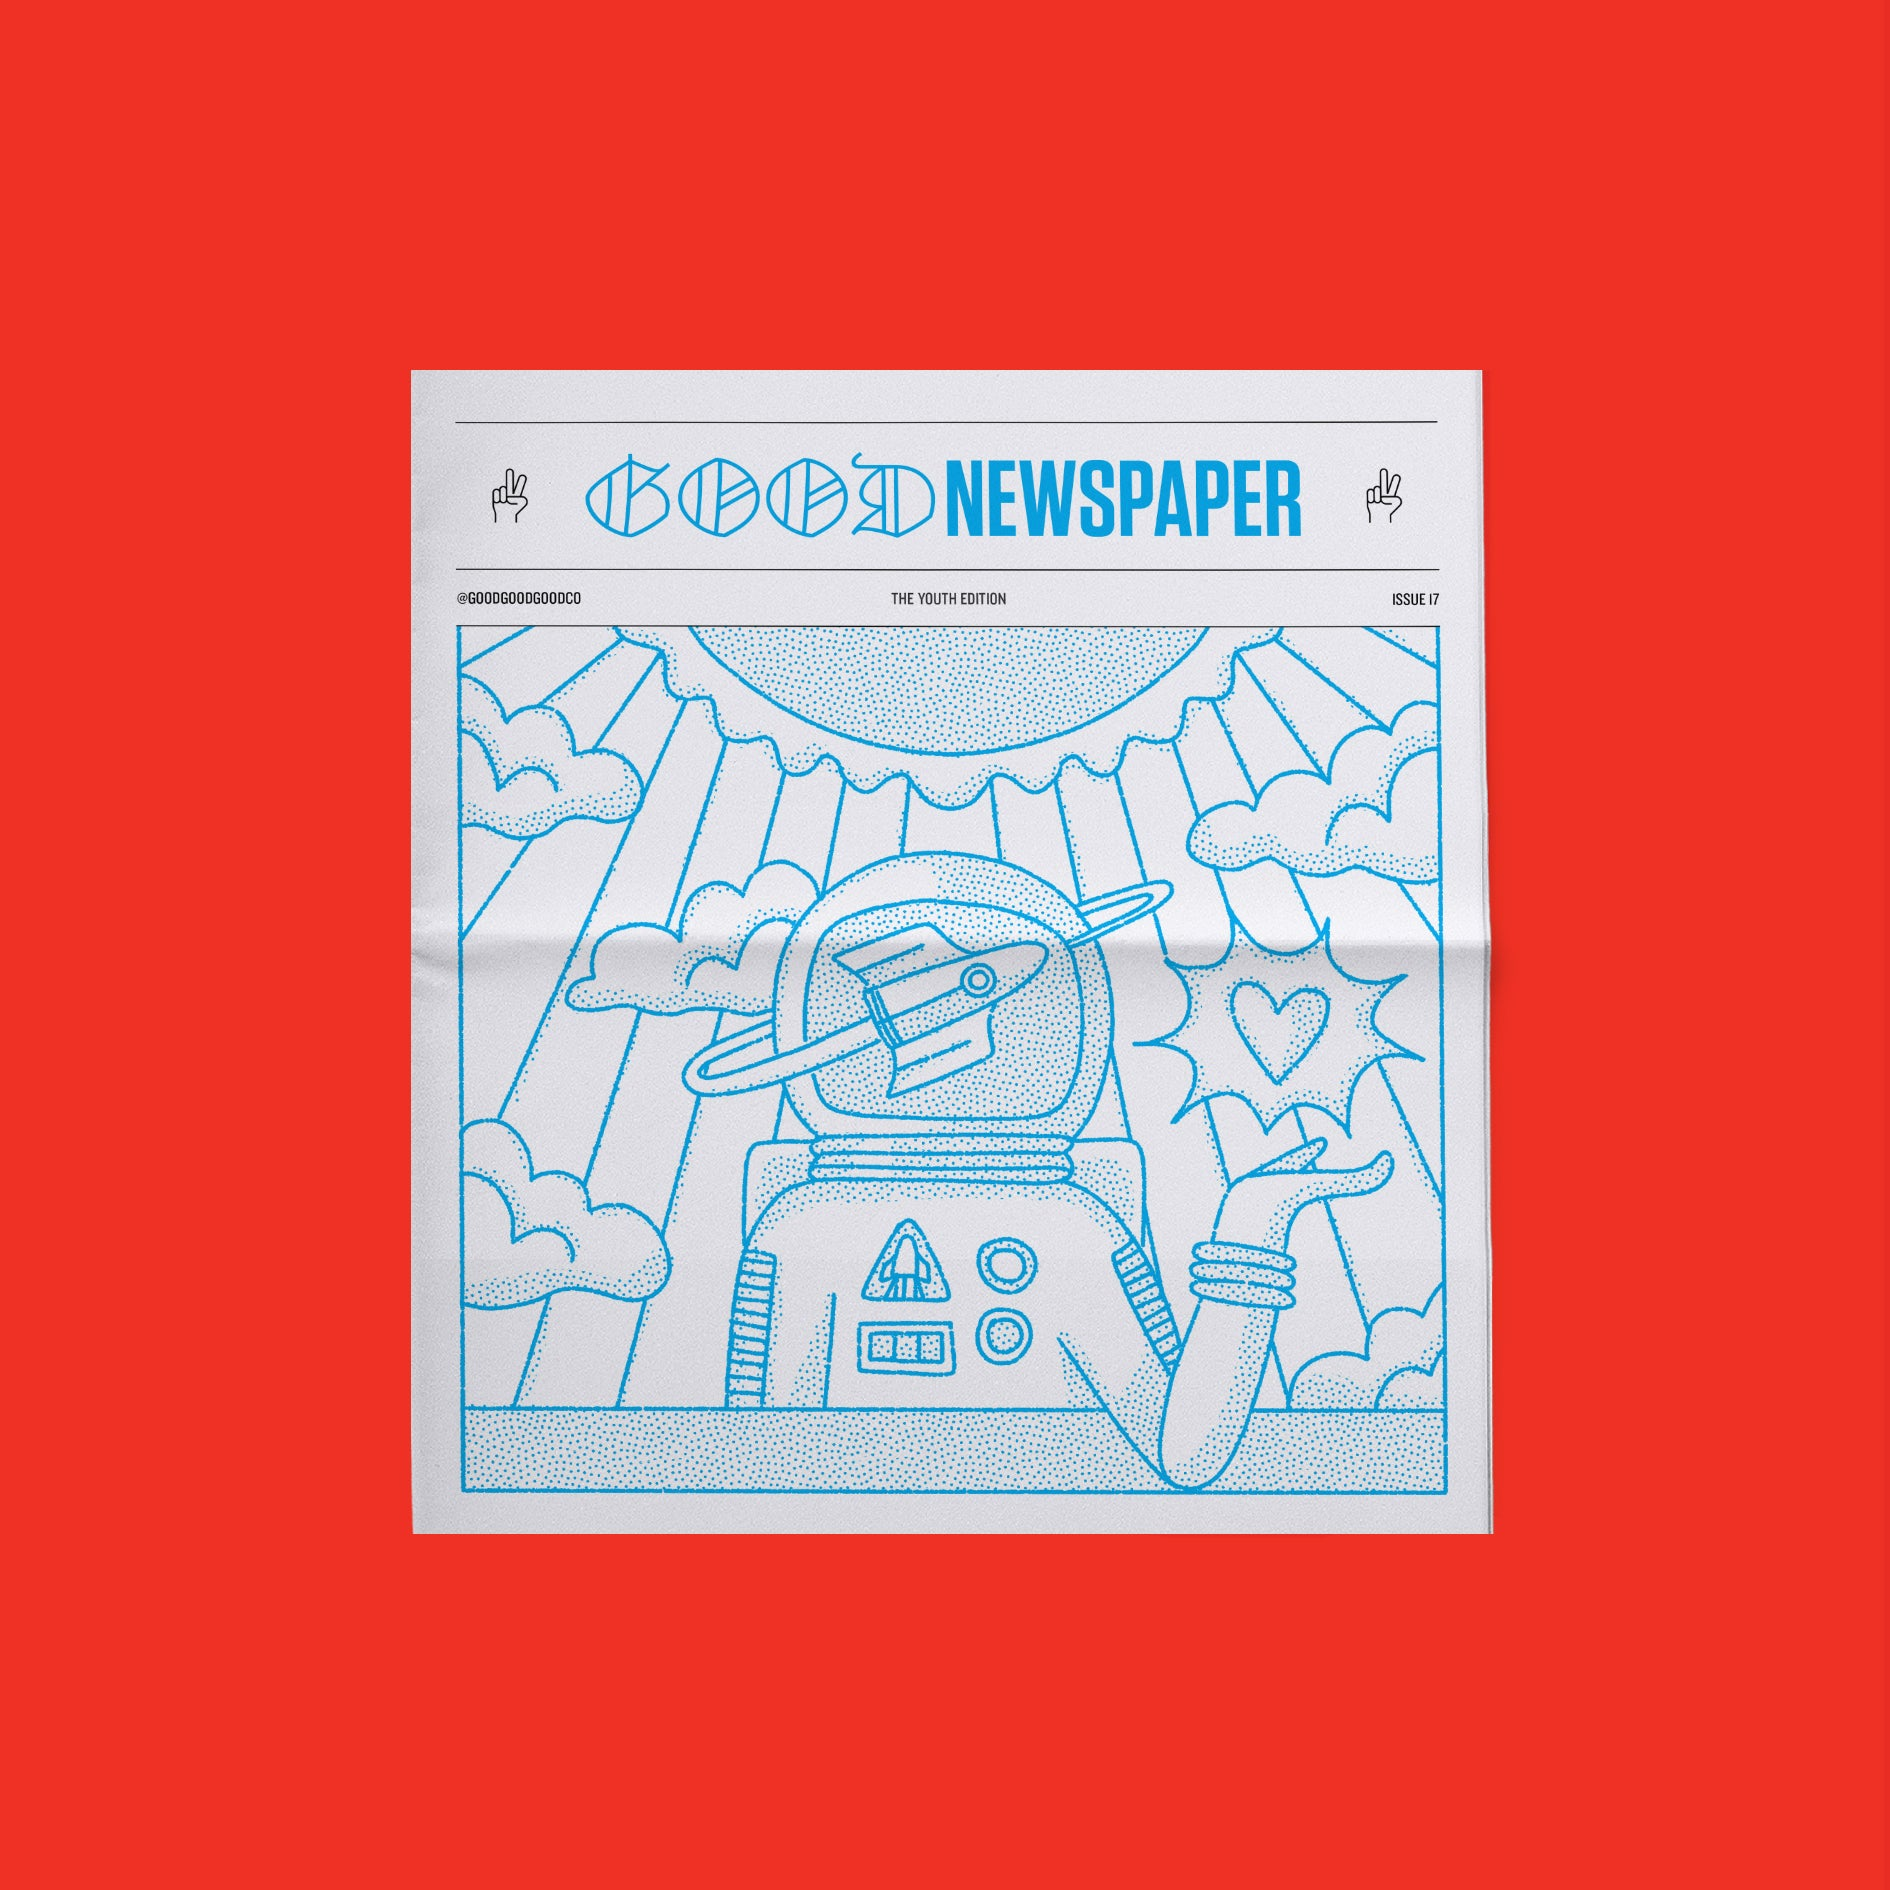 Goodnewspaper: The Youth Edition